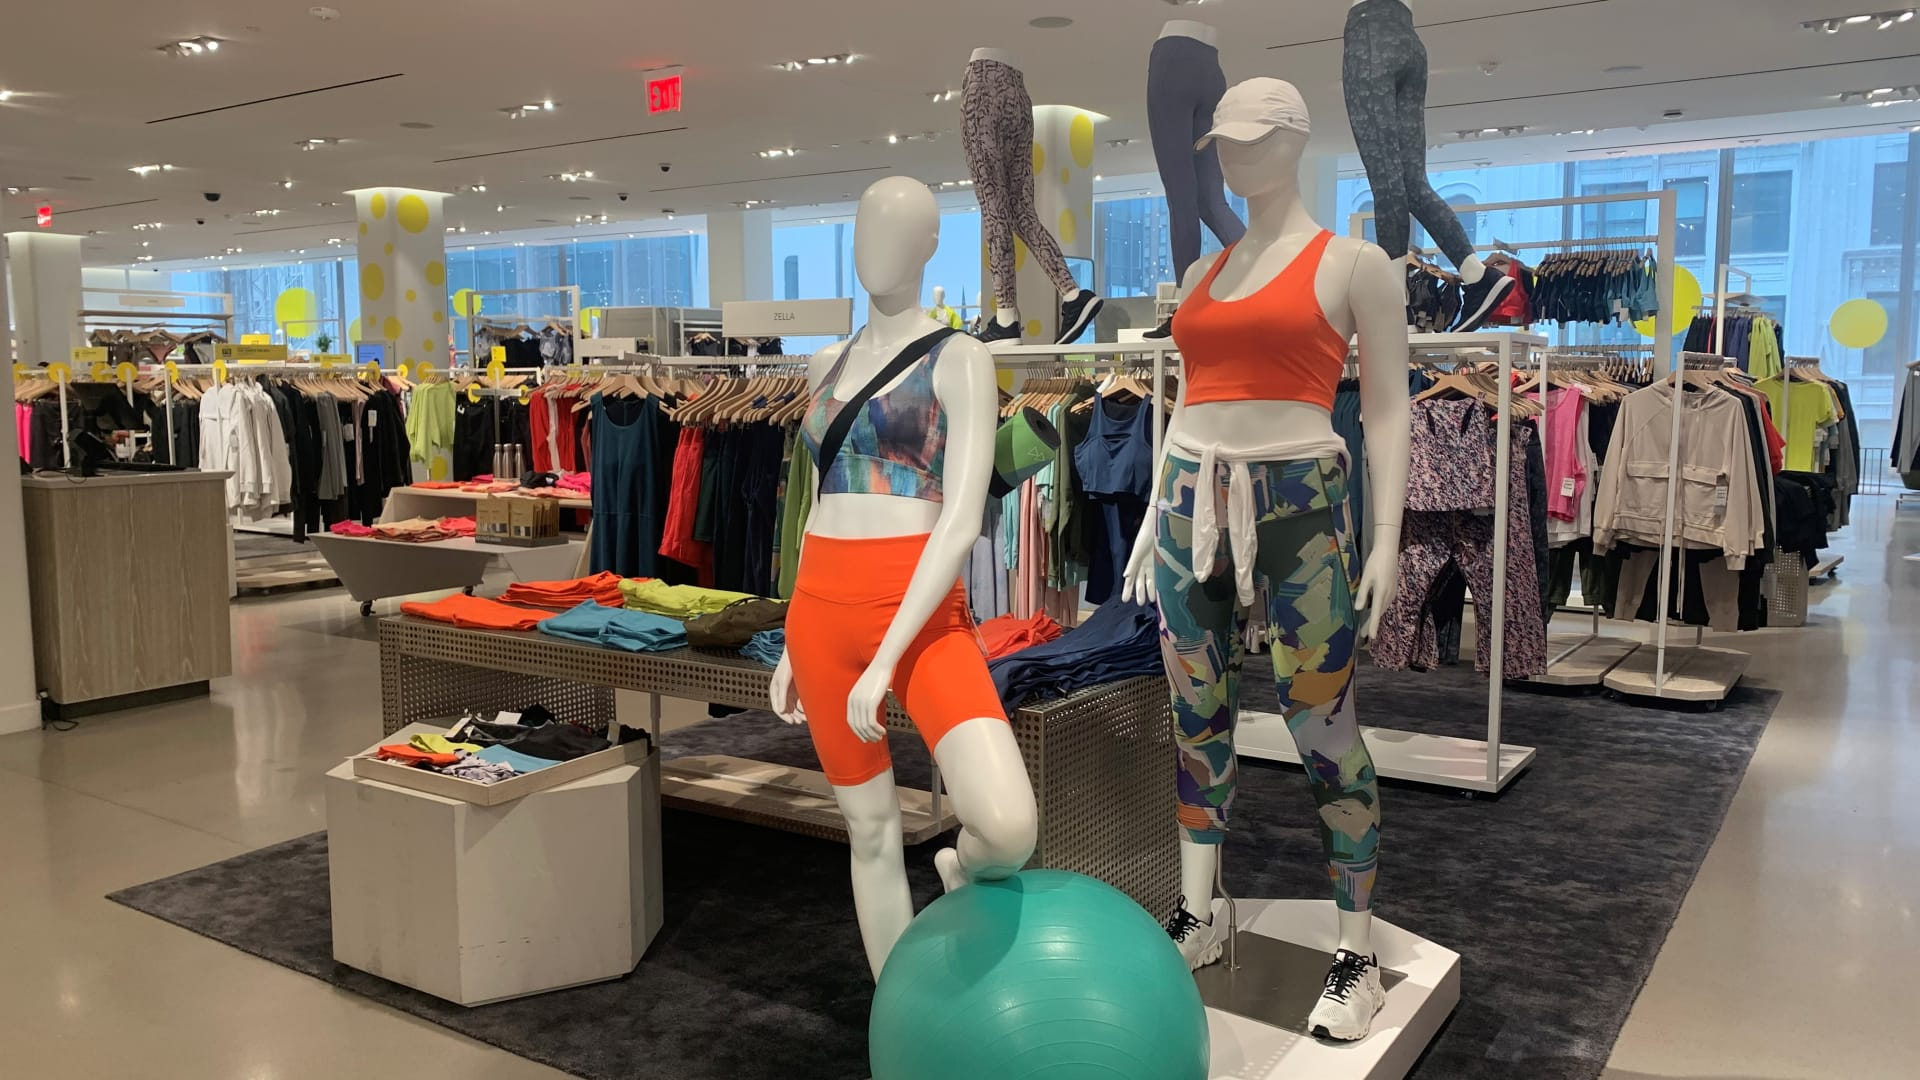 Active wear is on display during Nordstrom's annual Anniversary Sale event, at the company's flagship store in New York City.